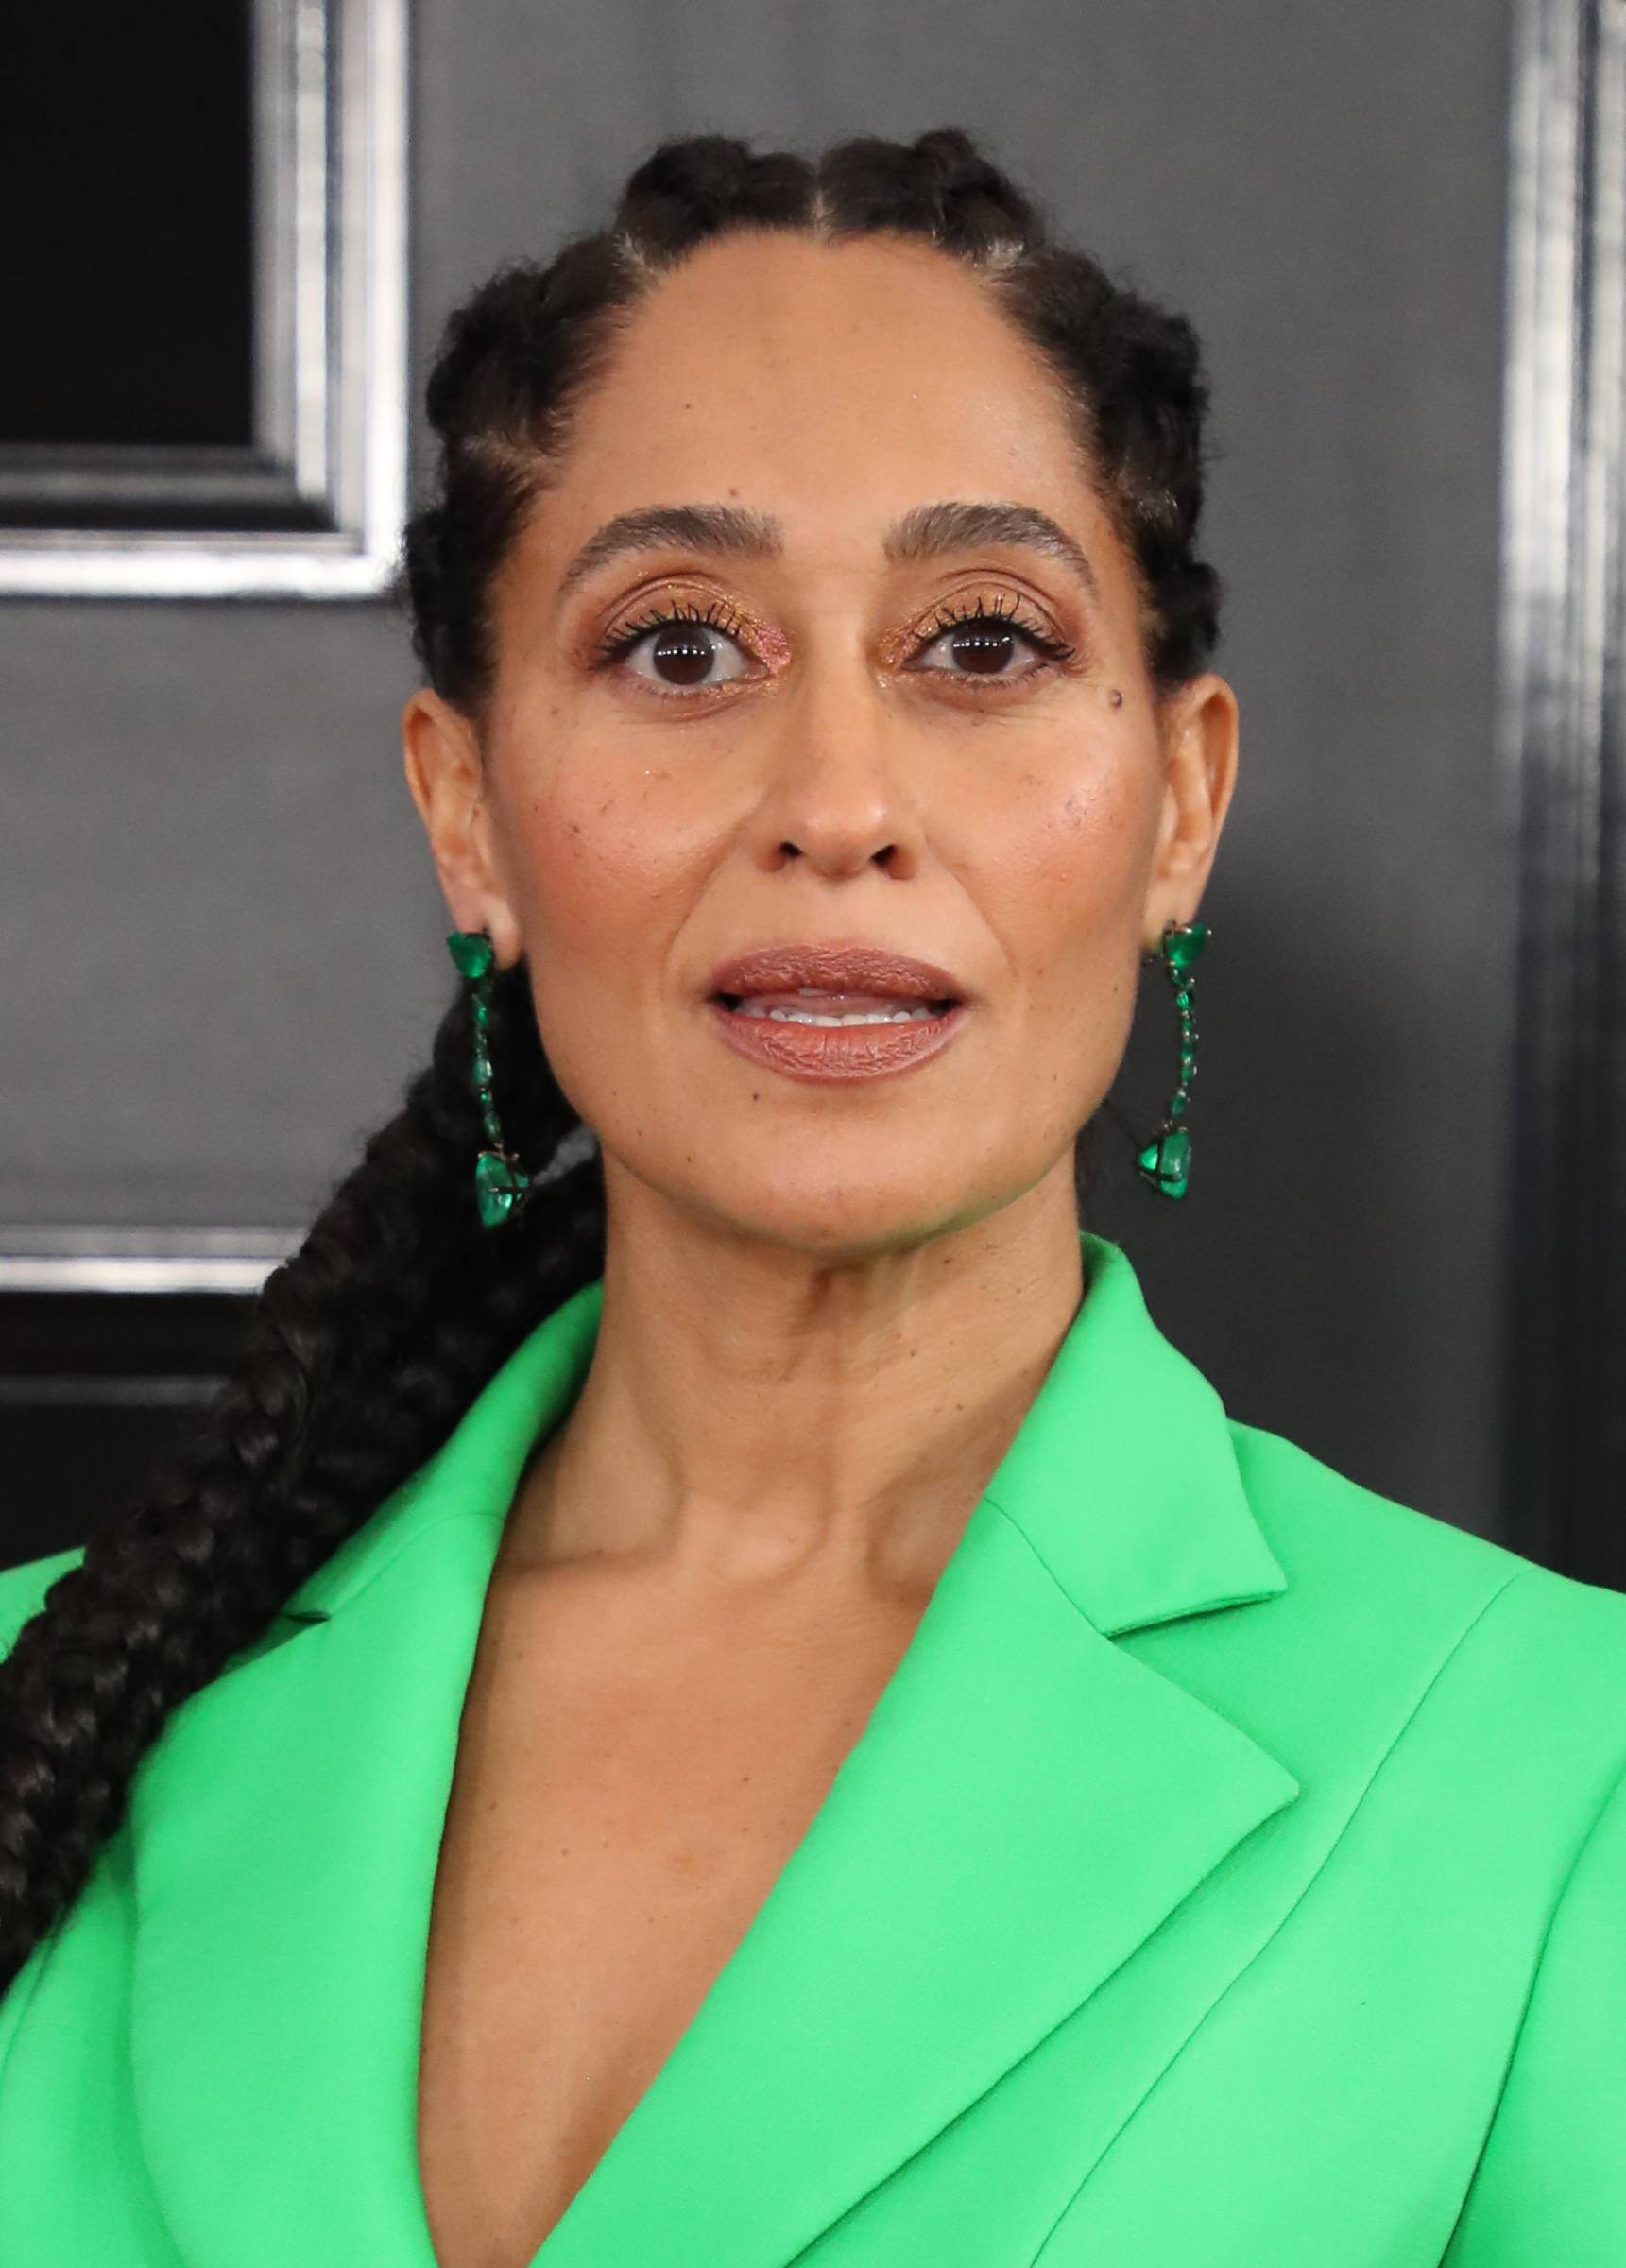 Natural thick hairstyles: Tracee Ellis Ross with long cornrow hairstyle wearing green blazer on the red carpet